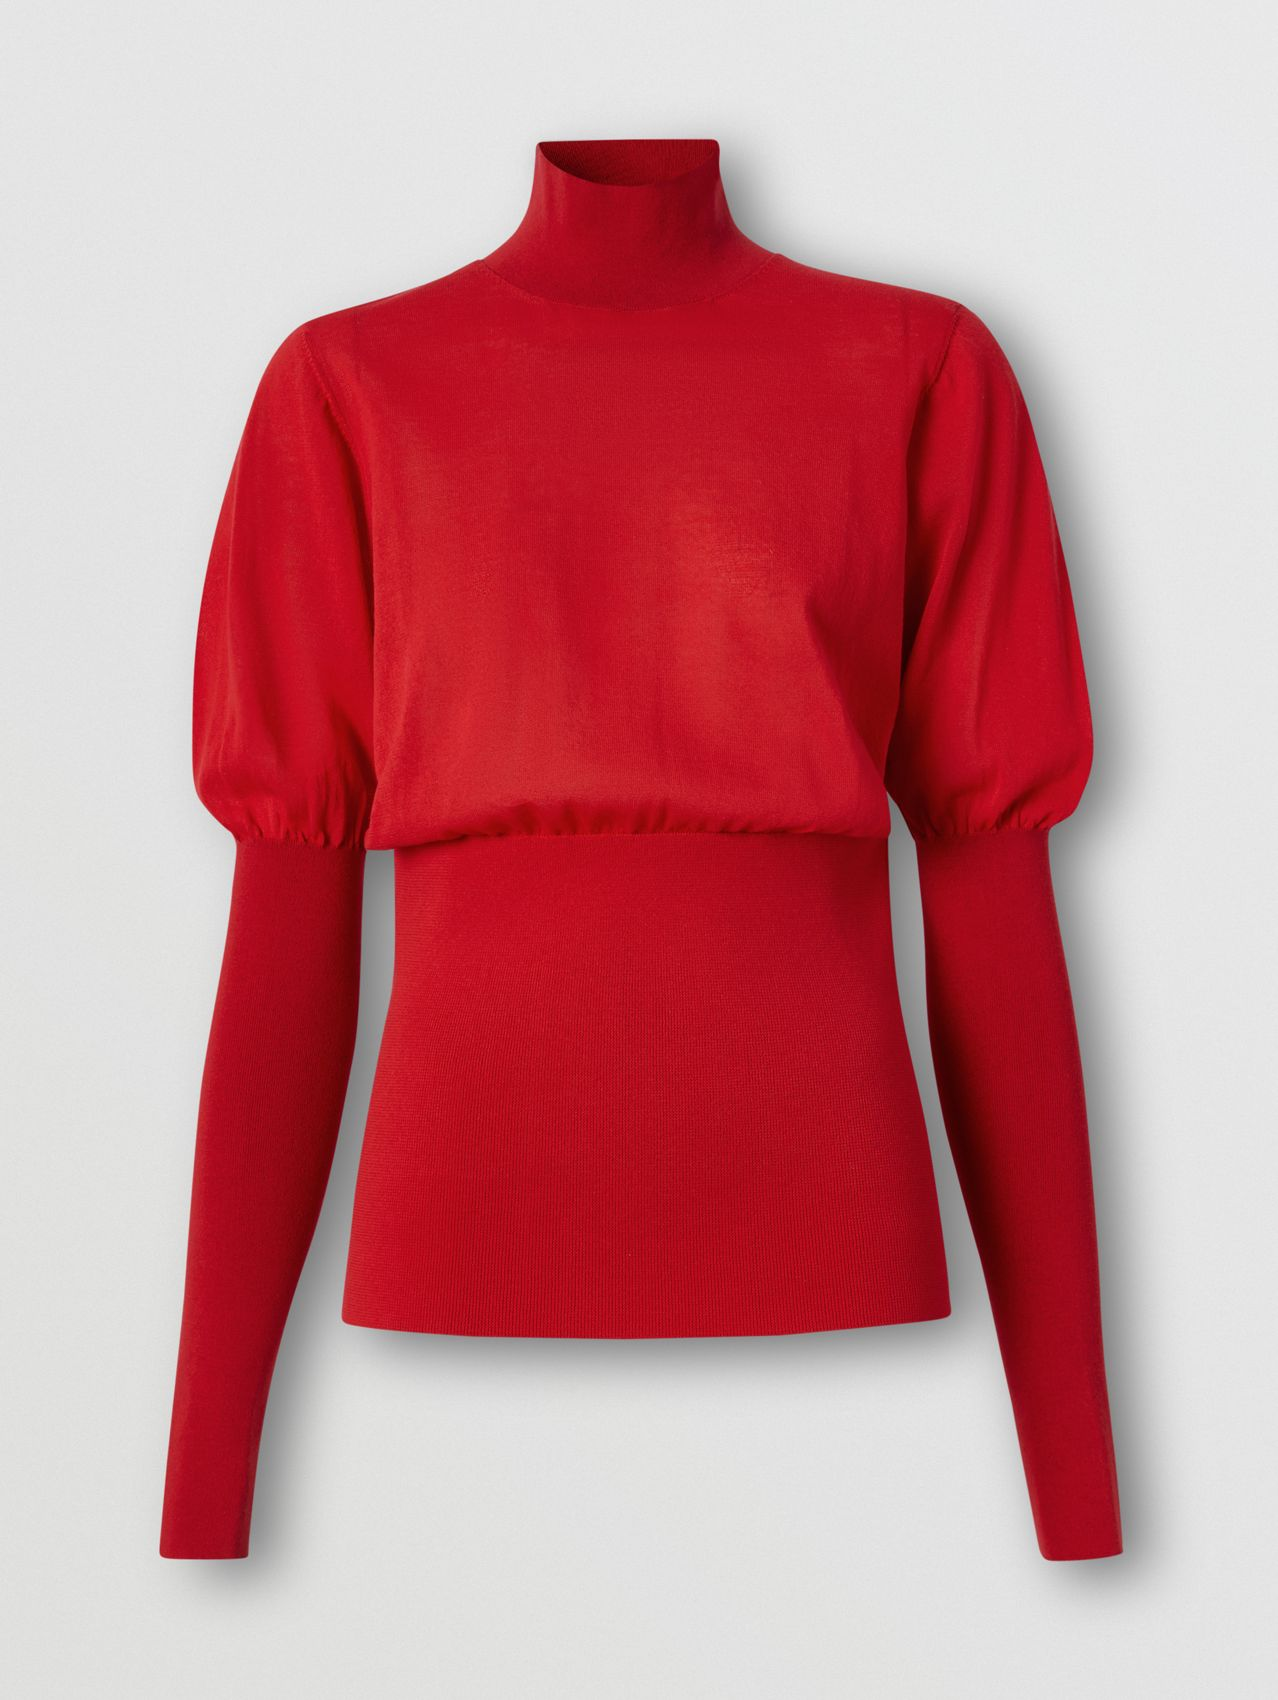 Puff-sleeve Knit Cotton Blend Turtleneck Sweater in Bright Red